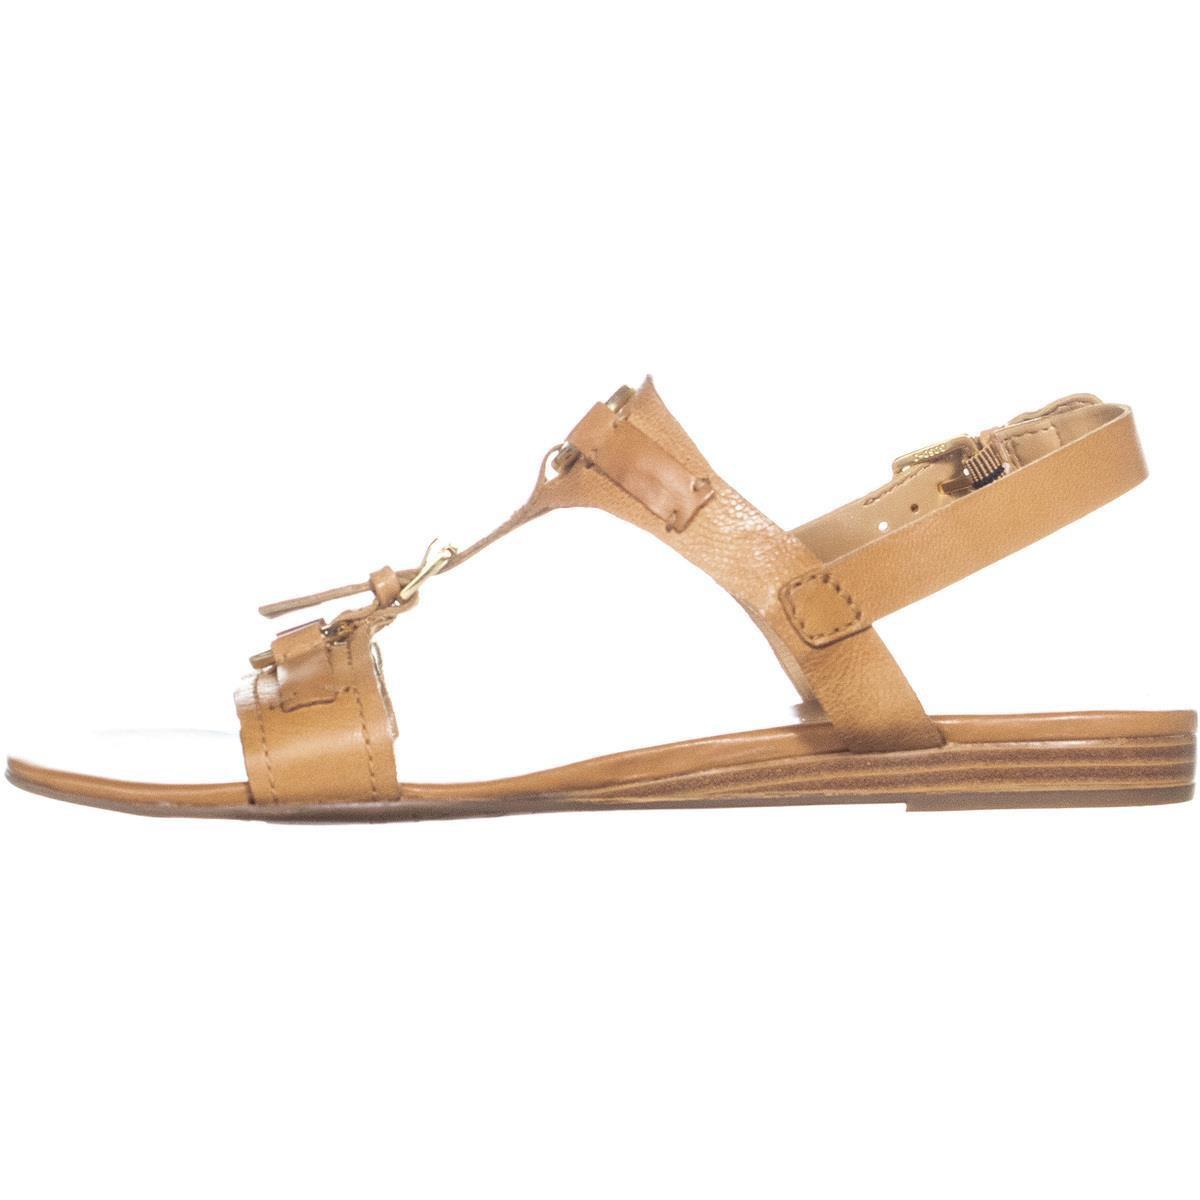 2d7b728d7eeb Franco Sarto - Multicolor Gili Buckled Flat Sandals - Lyst. View fullscreen